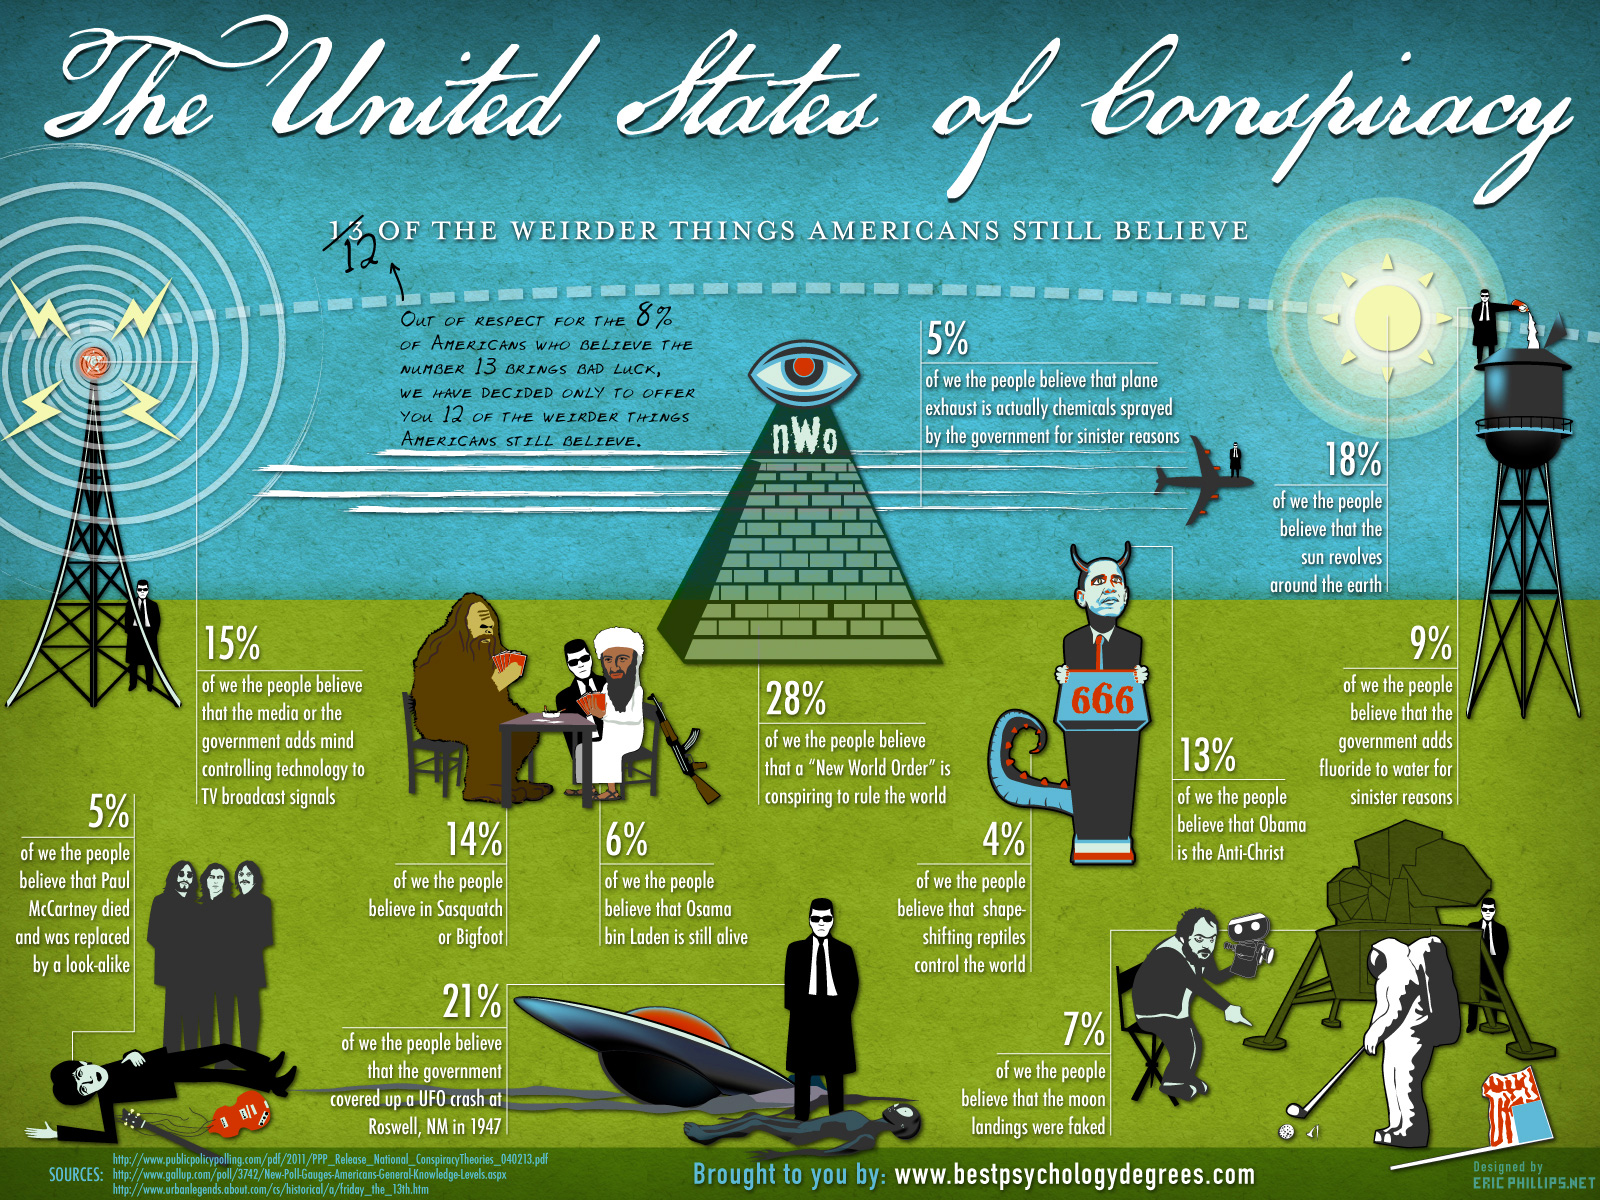 the-united-states-of-conspiracy_51a0ba3398b8e.jpg